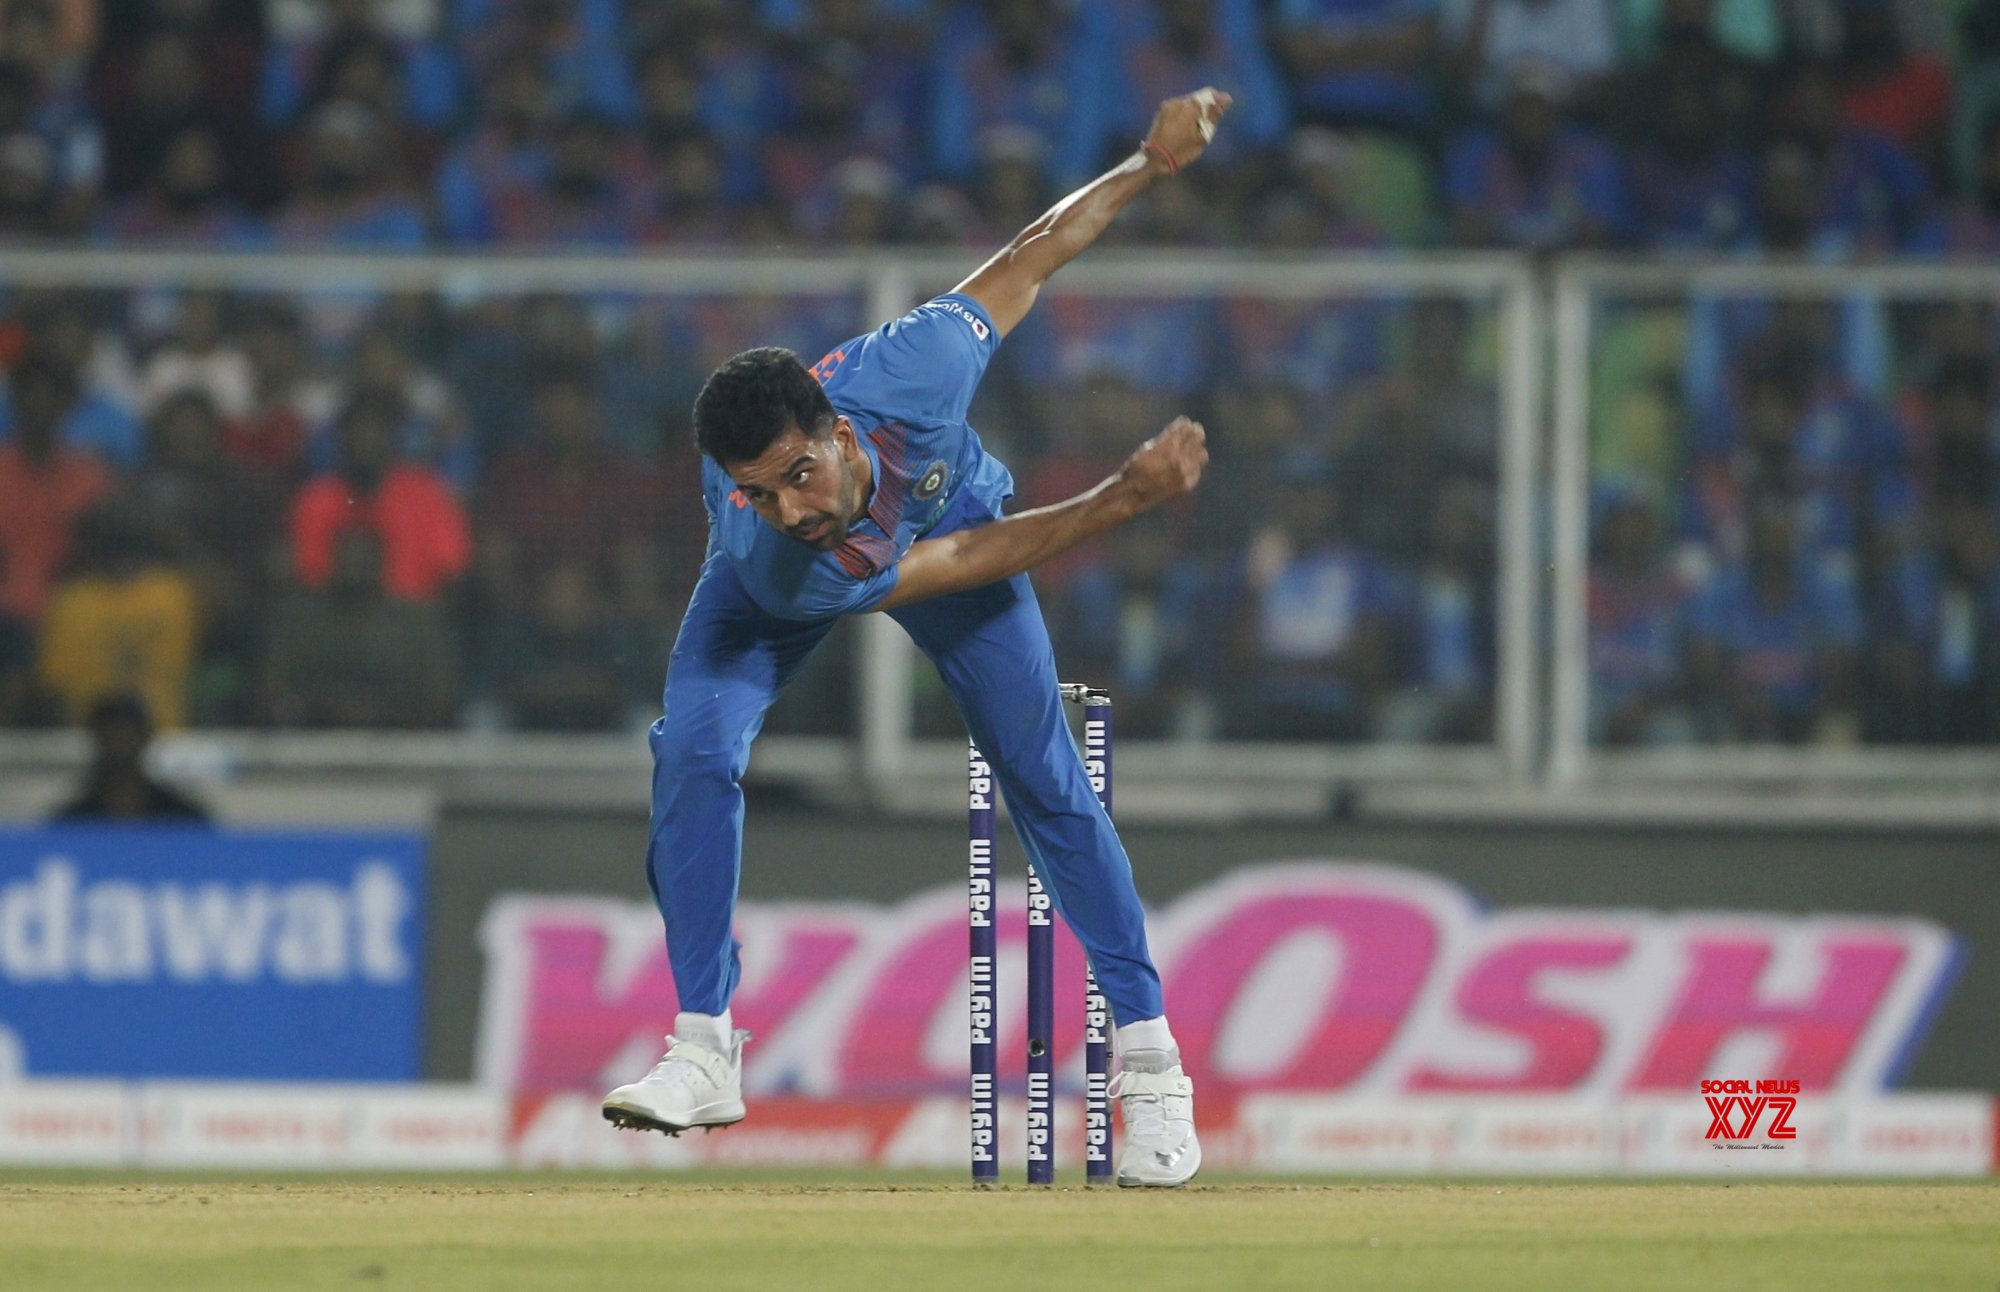 My batting should give confidence to top-order batsmen: Chahar